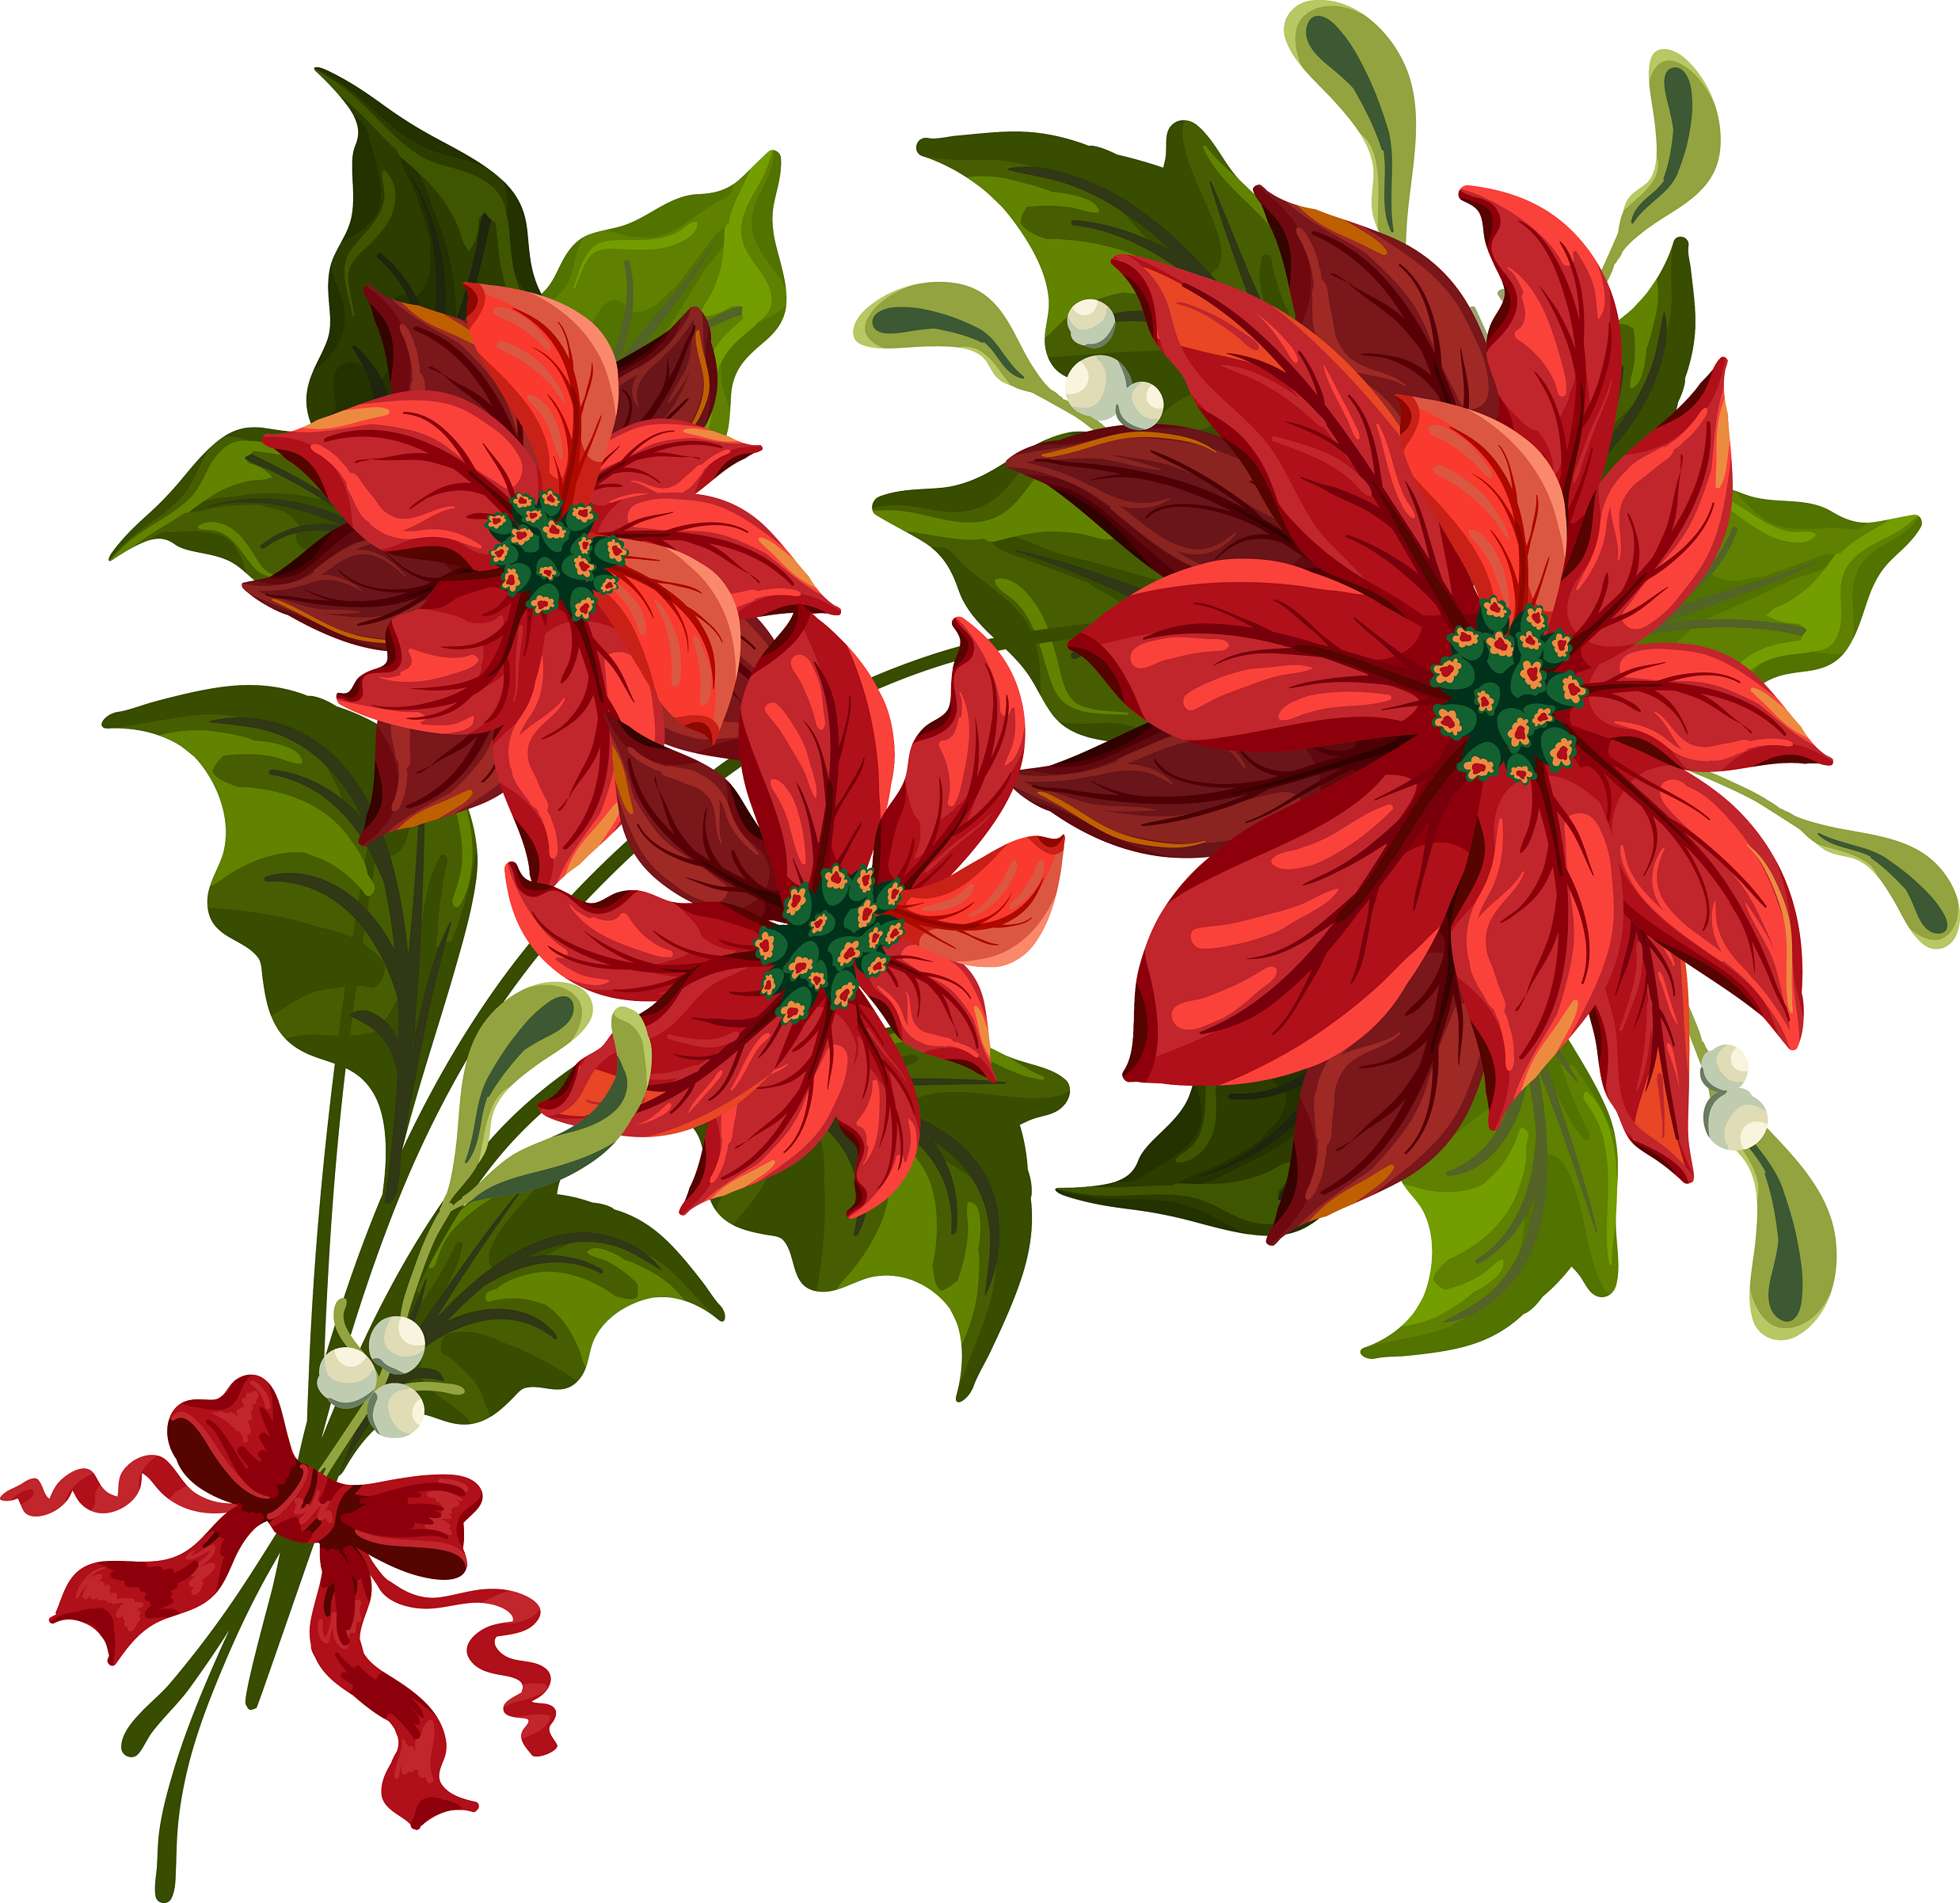 Poinsettia clipart #4, Download drawings